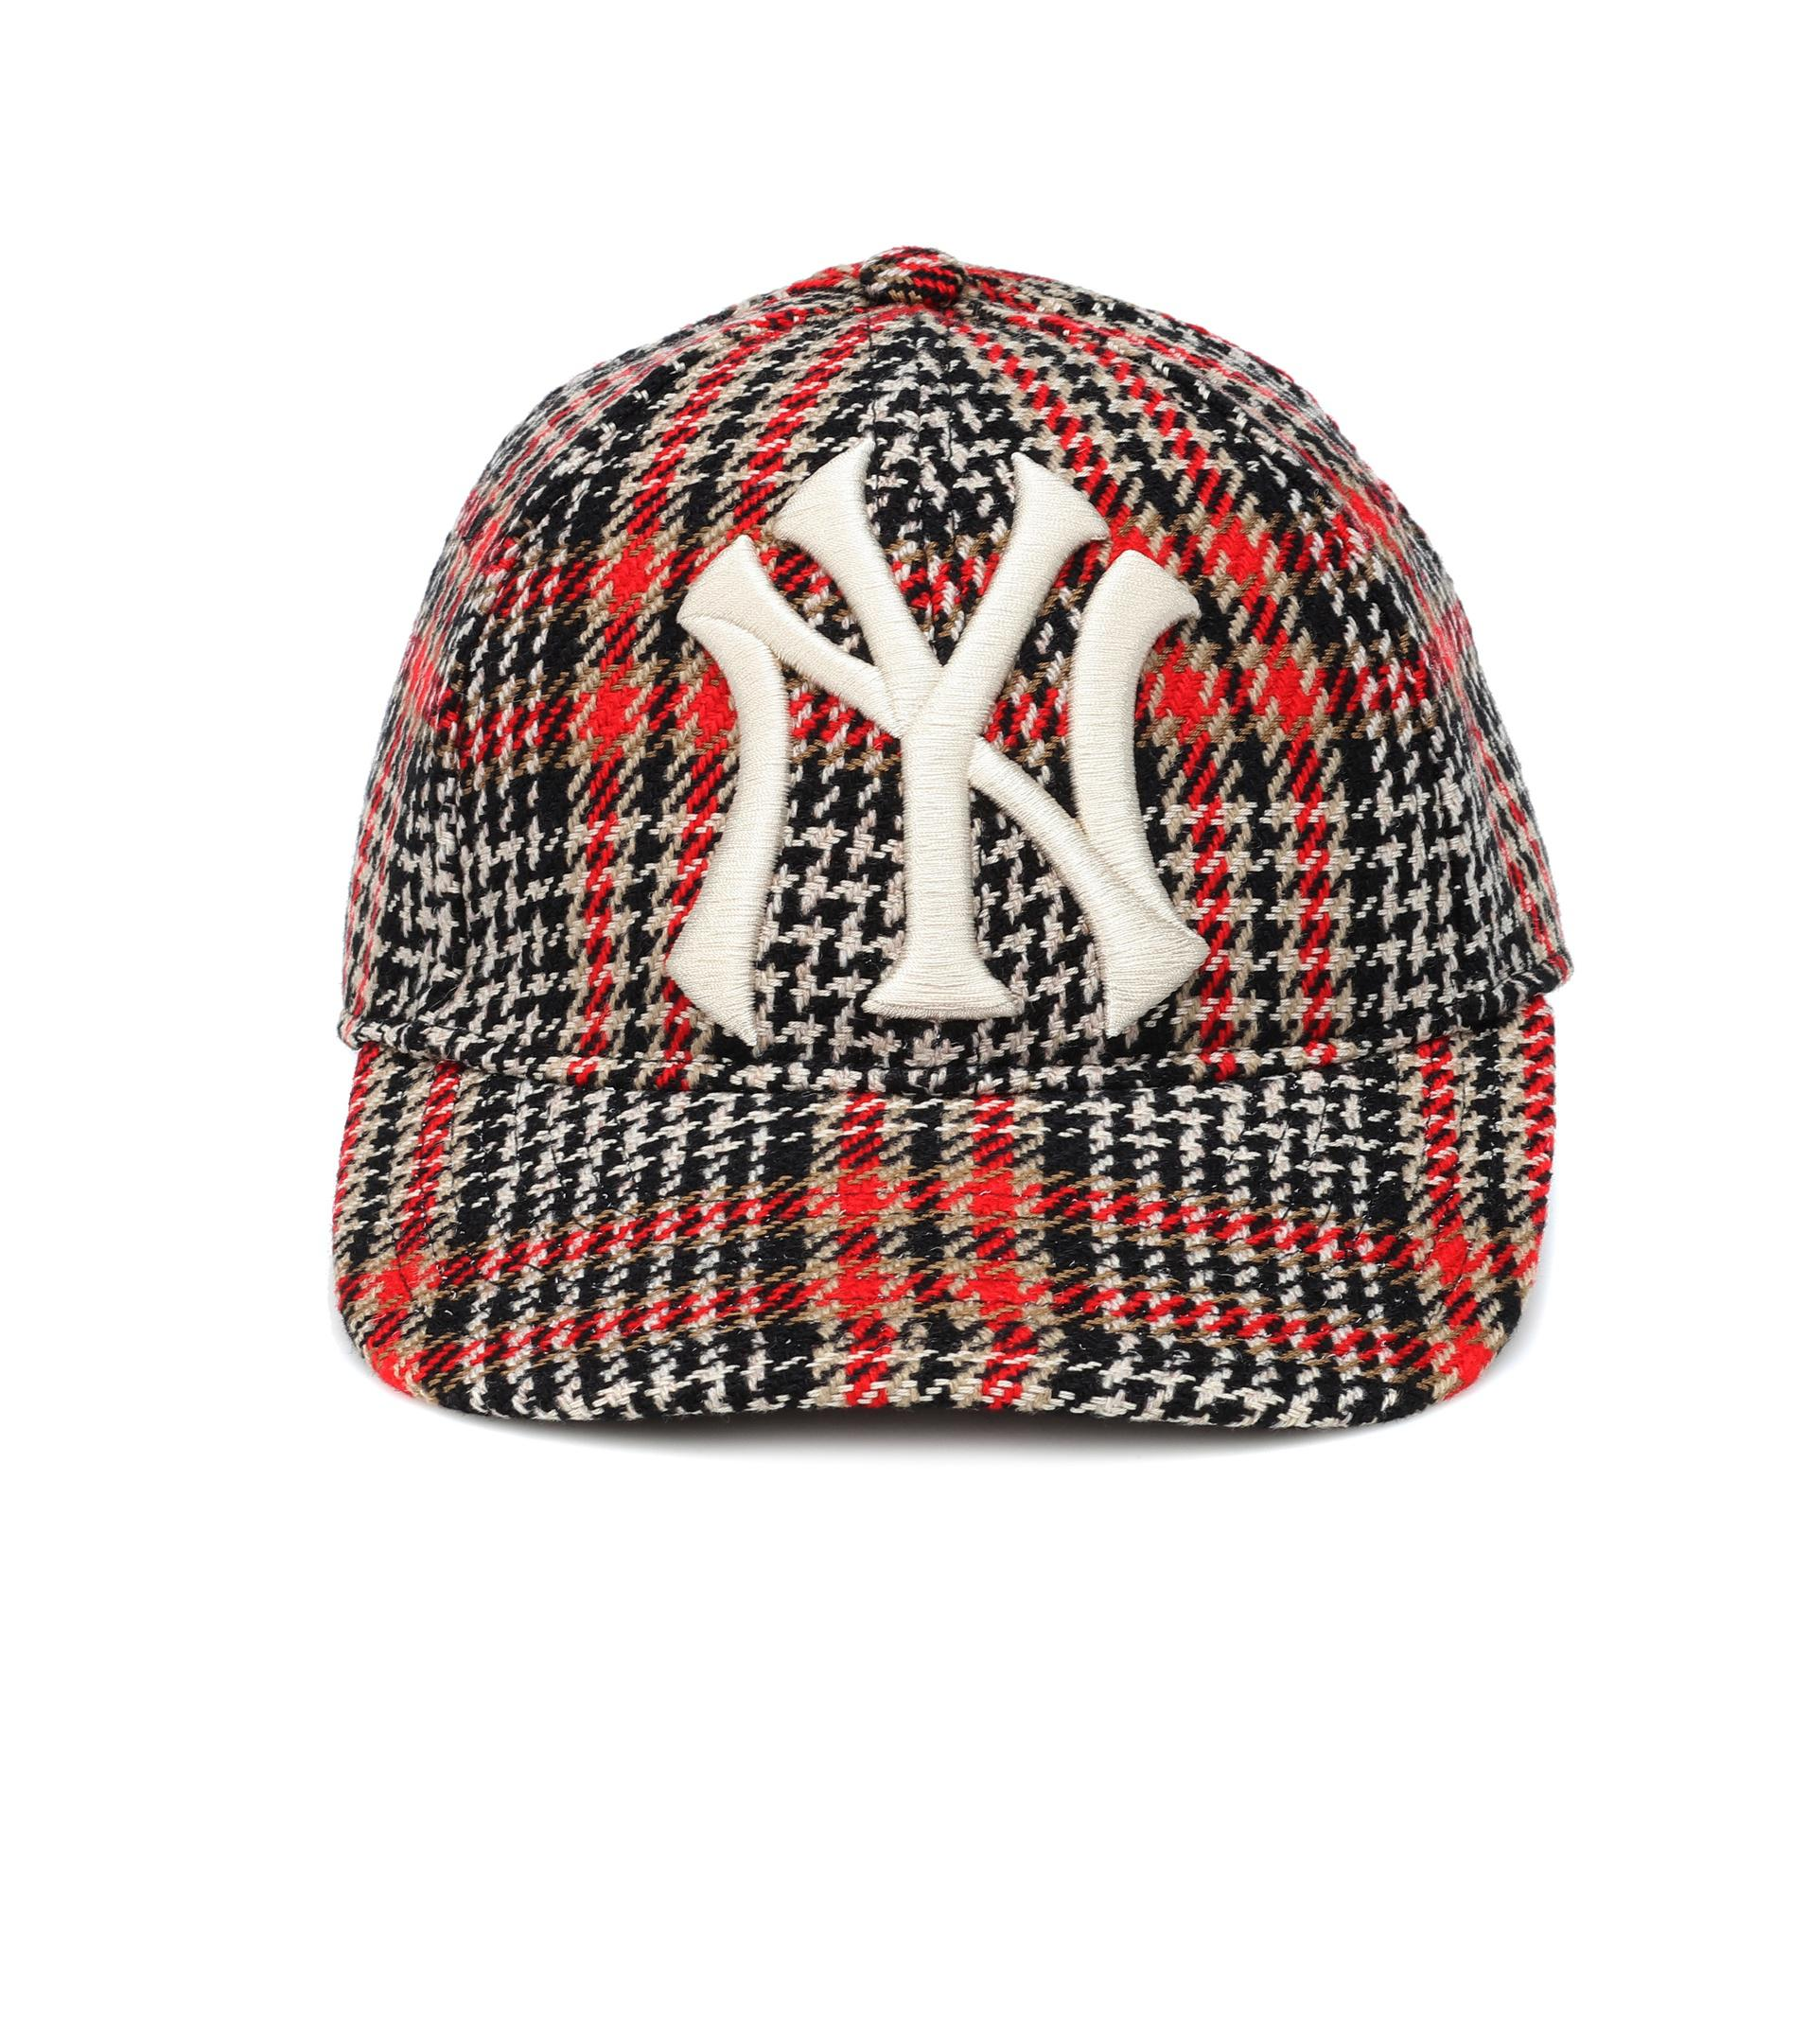 14cd6c7fadd Lyst - Gucci Ny Yankees Houndstooth Baseball Cap in Red